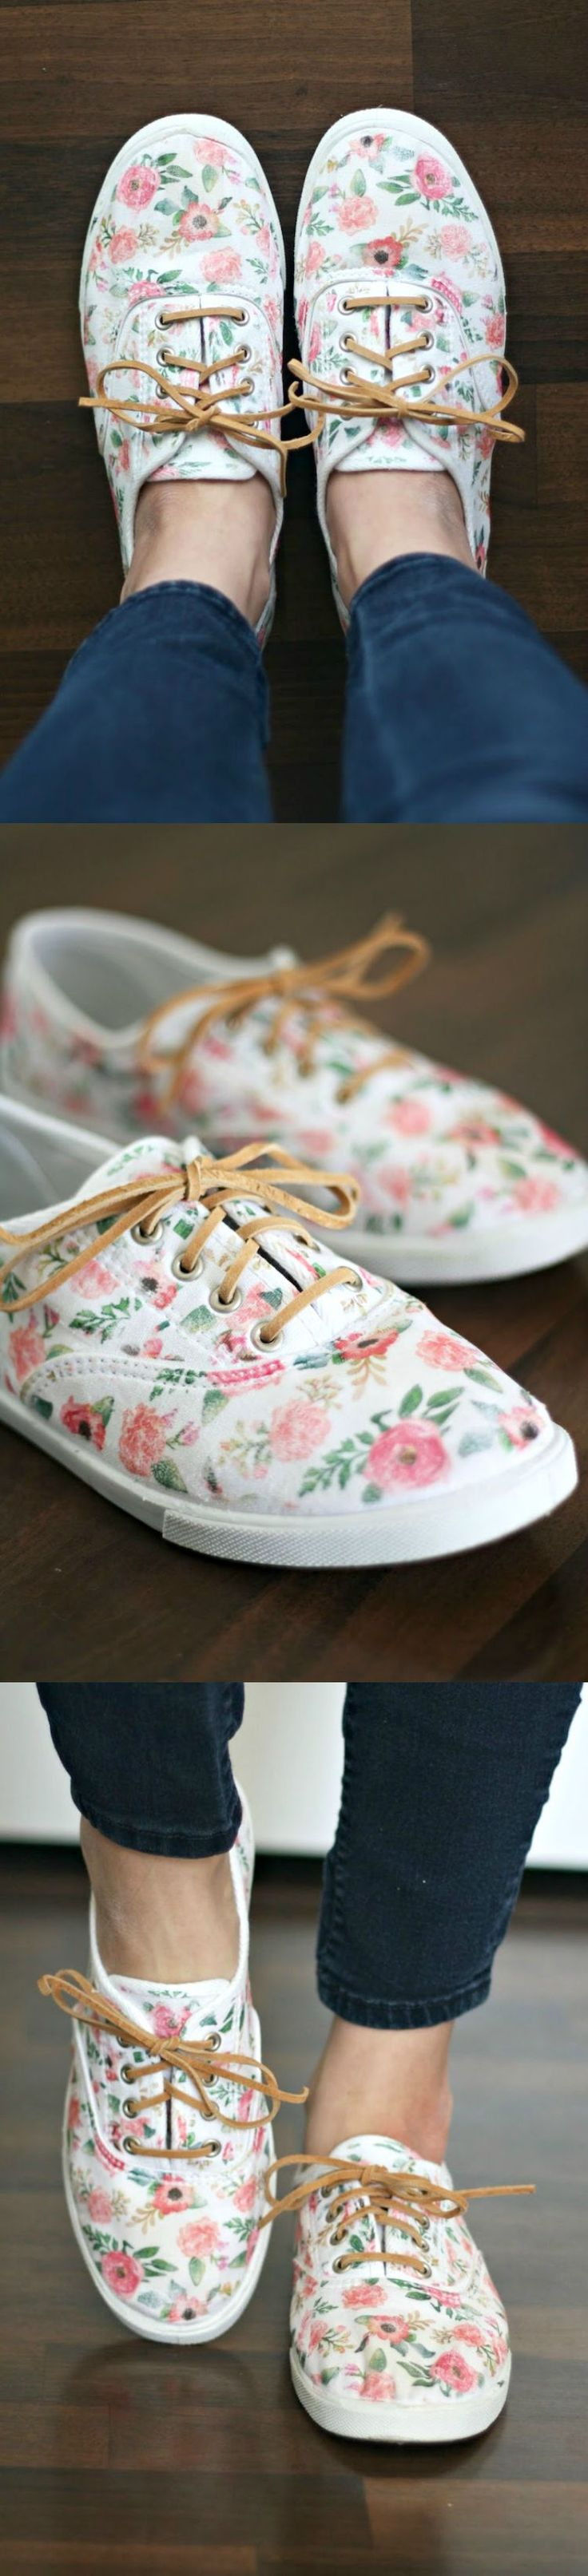 images about DIYDecorating Shoes Lace up